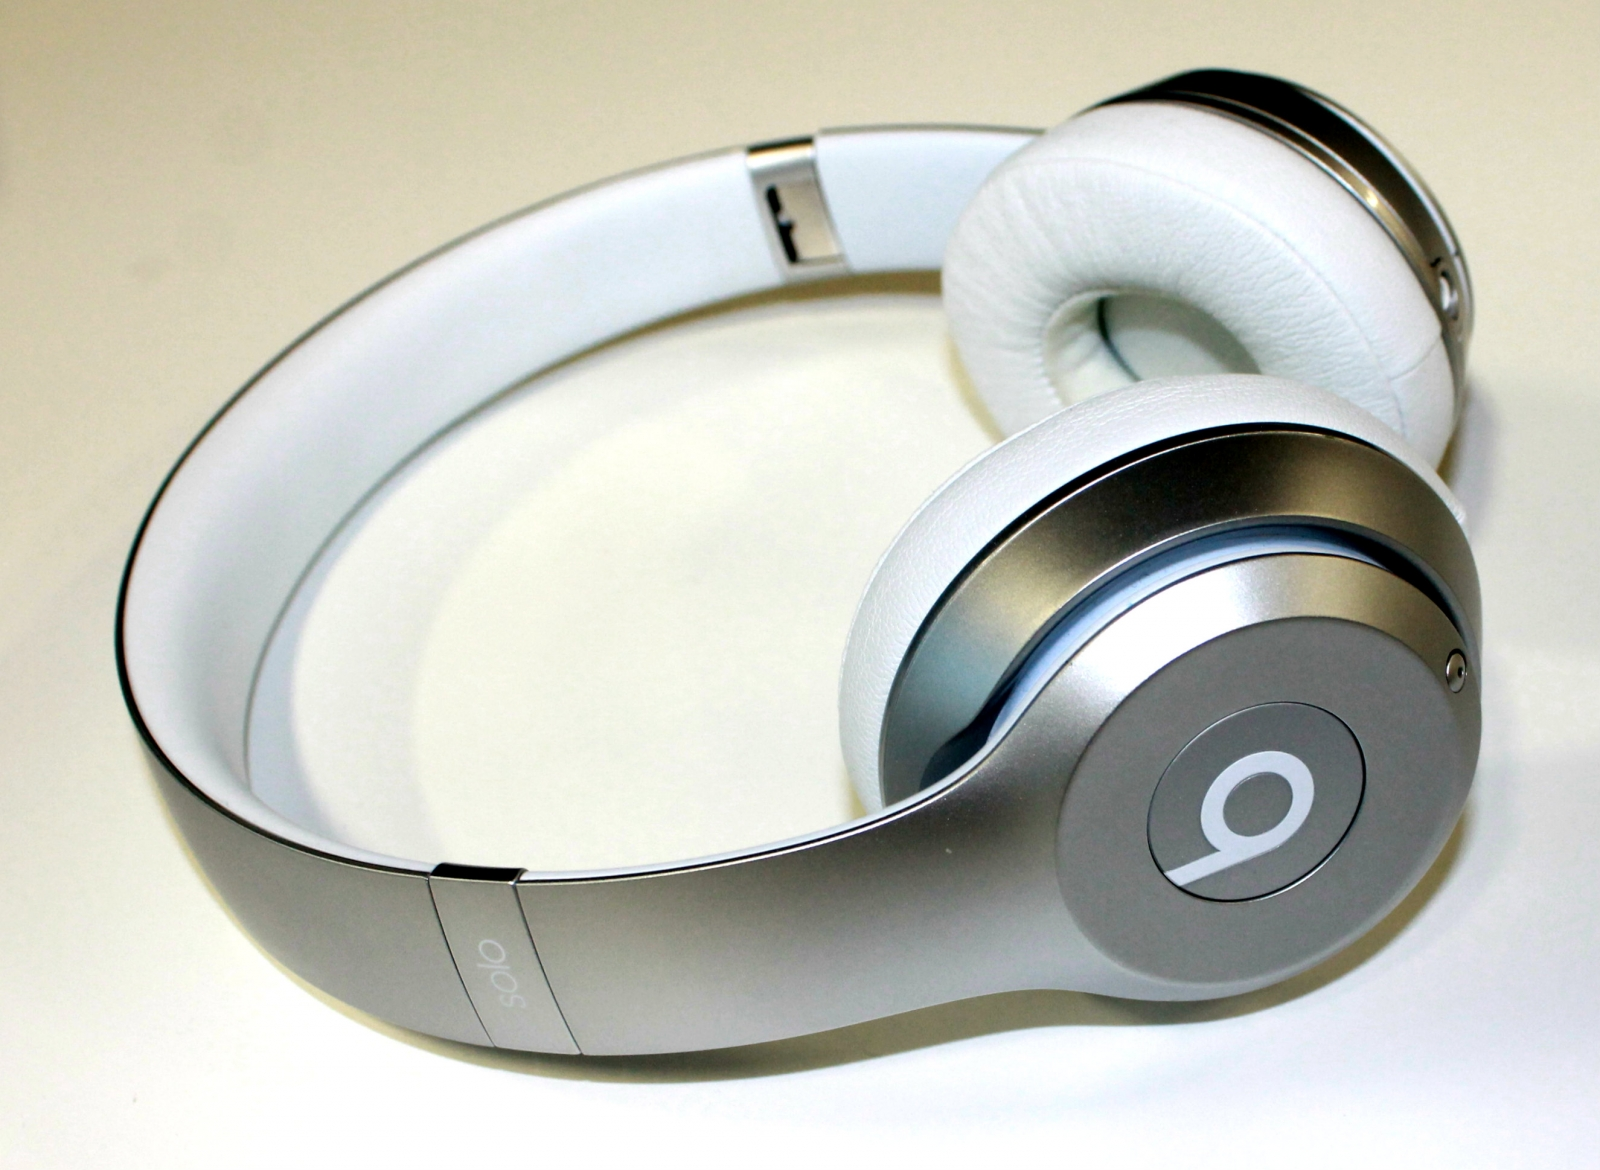 Beats Solo 2 Wireless headphones